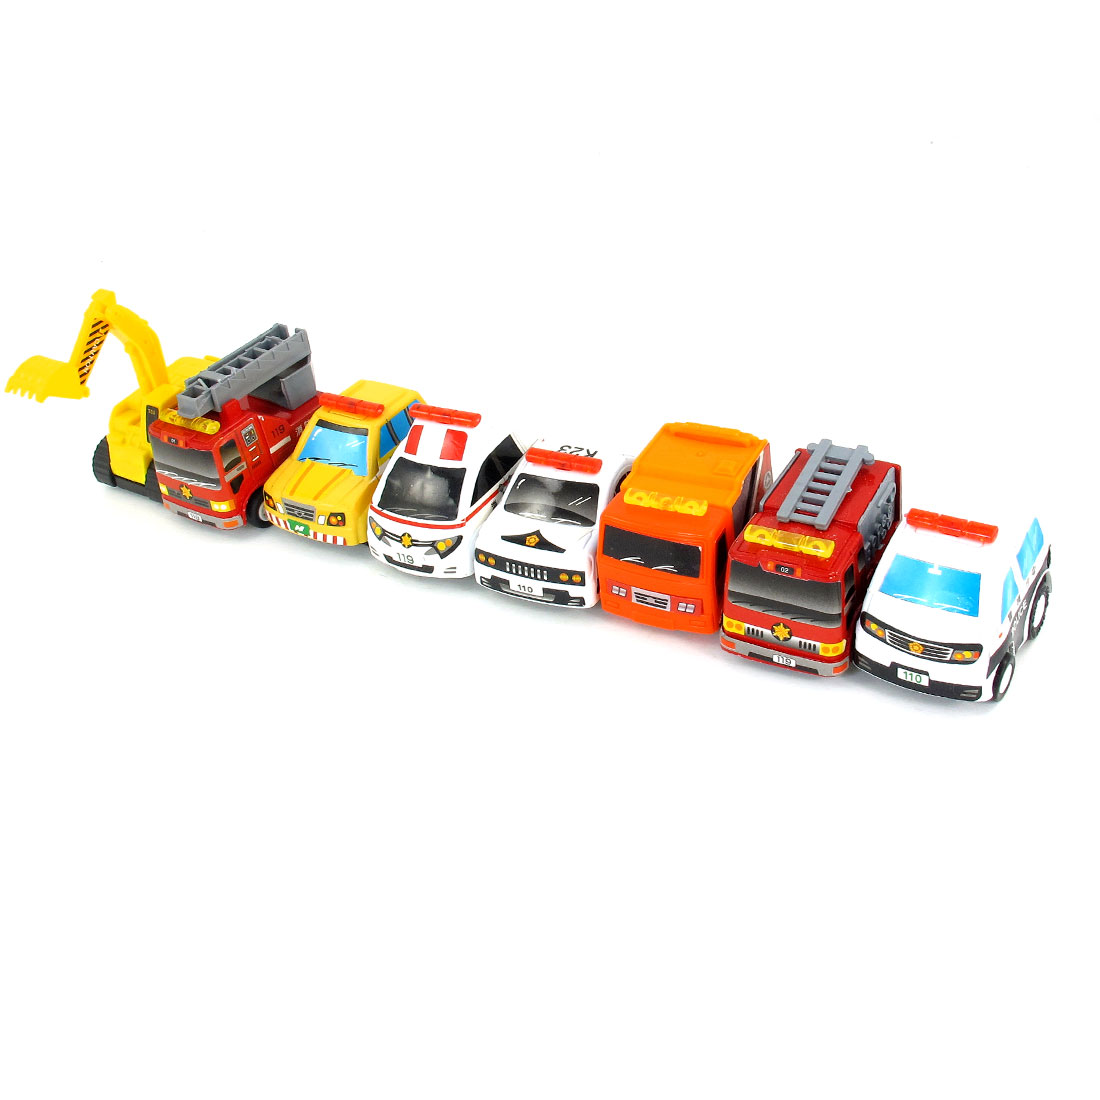 8 in 1 Child Yellow White Orange Hoist Crane Truck Police Car Model Toy Set